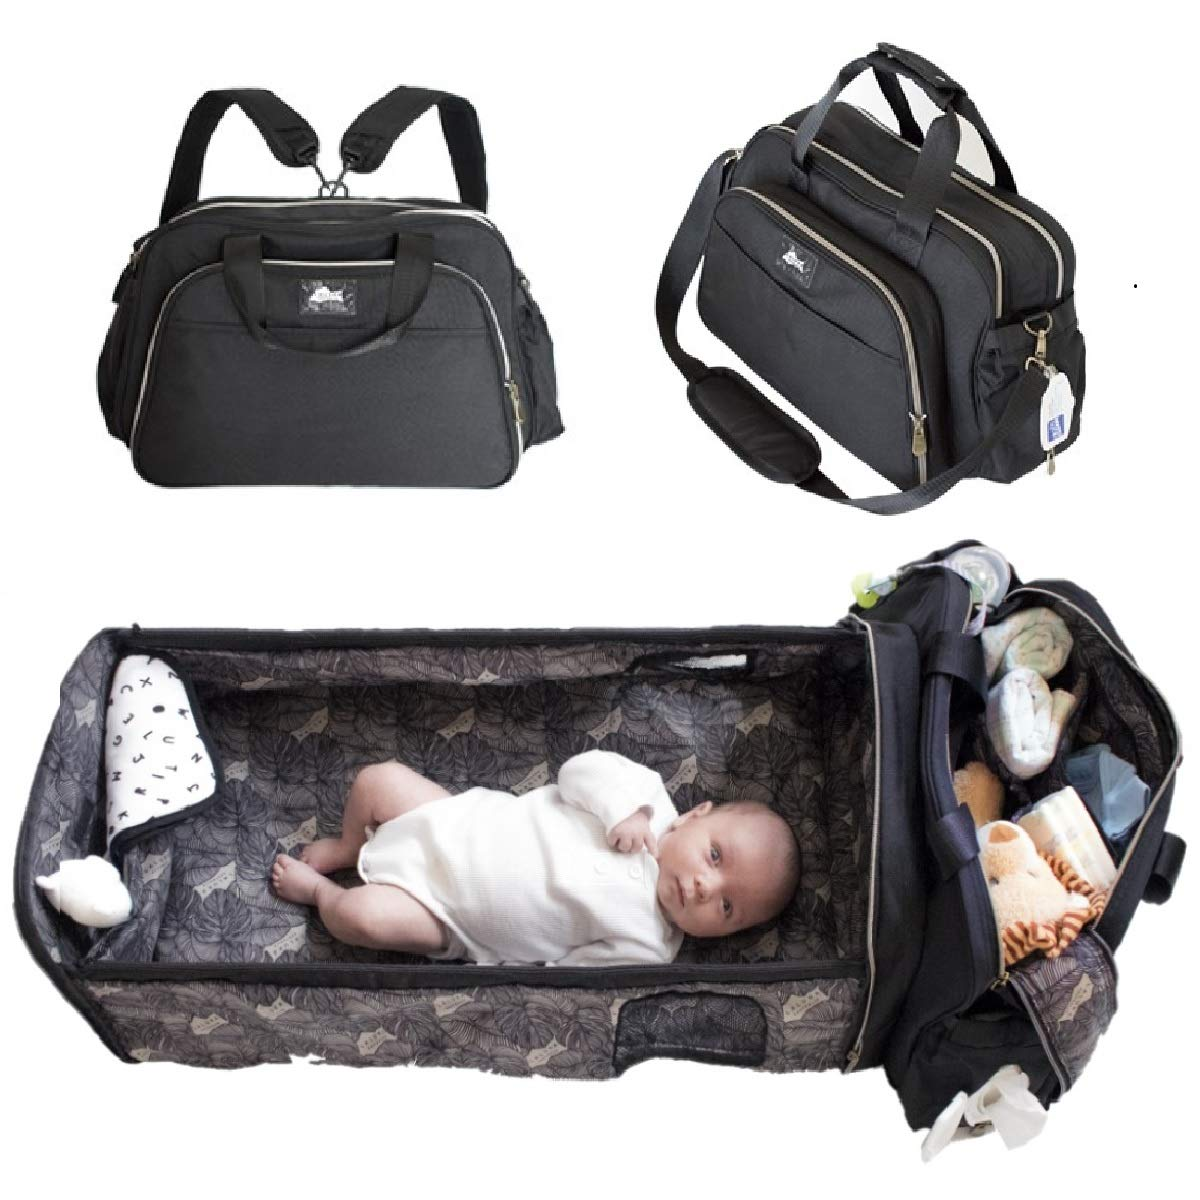 Portable Travel Bassinet for Baby with Large Diaper Bag Backpack (Black) - Functions as Easy Folding Baby Bed for Travel with Change Station - Laluka